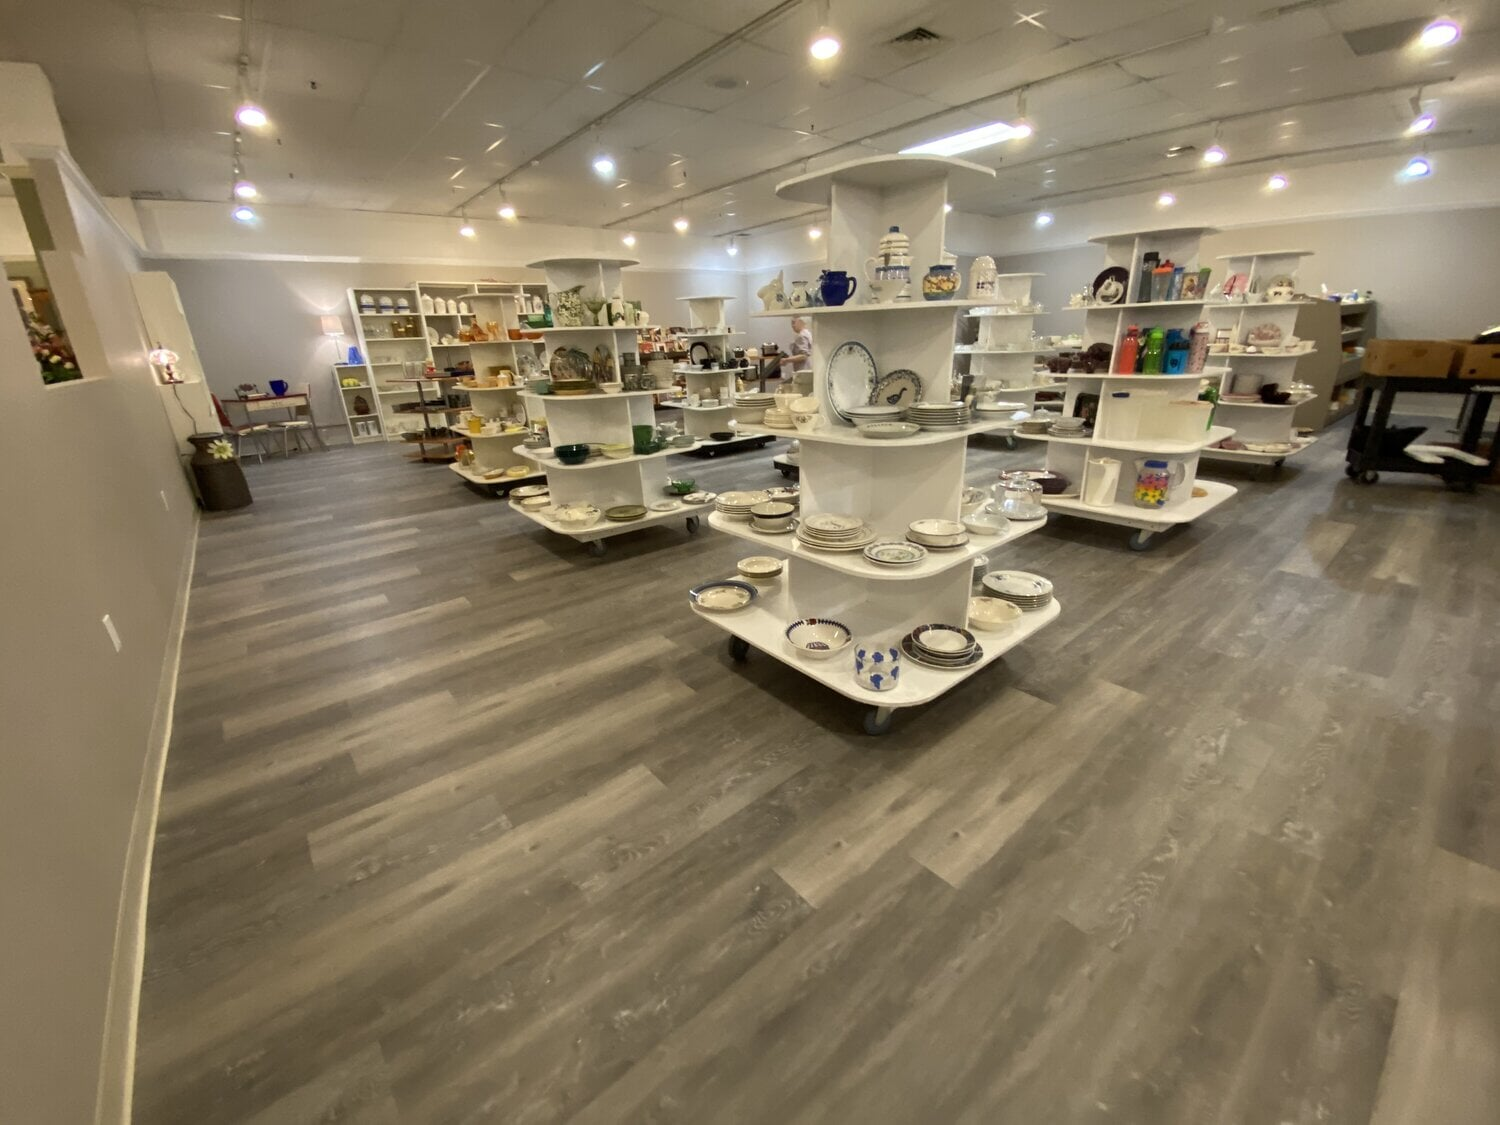 Commercial flooring in New Holland, PA from Freedom Flooring